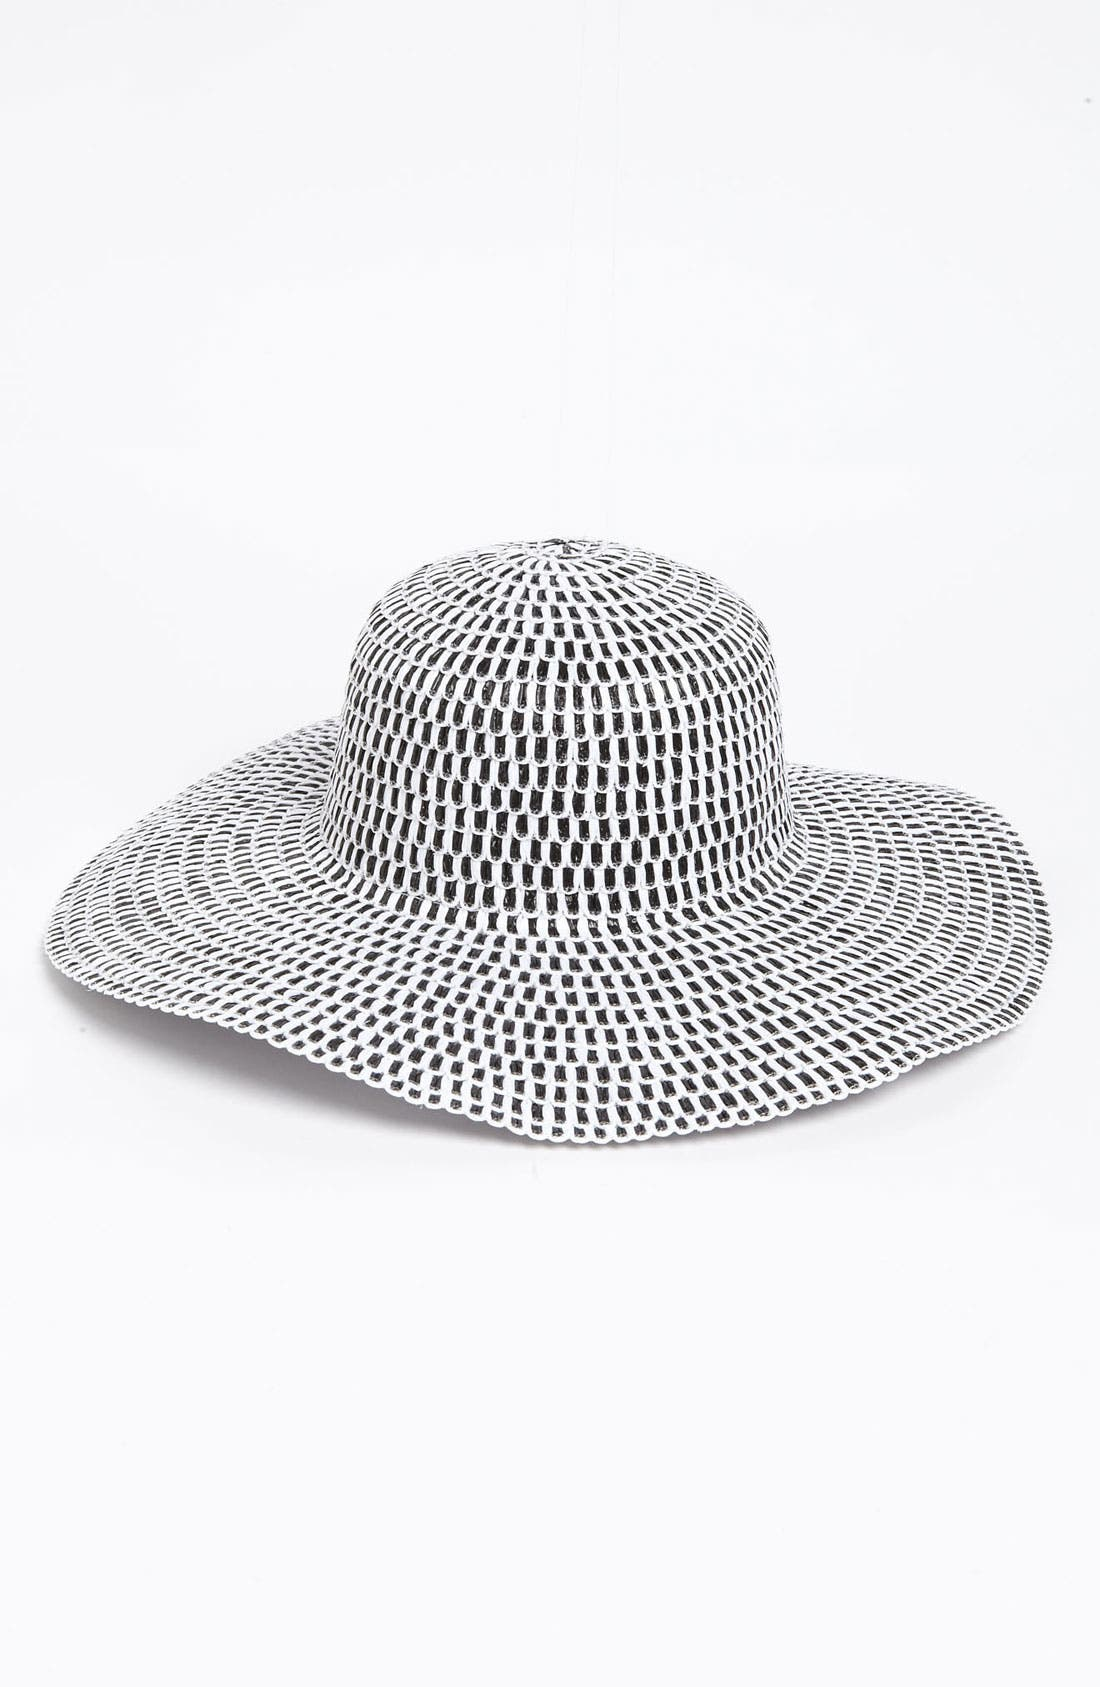 Alternate Image 1 Selected - Nordstrom 'Gingham' Sun Hat